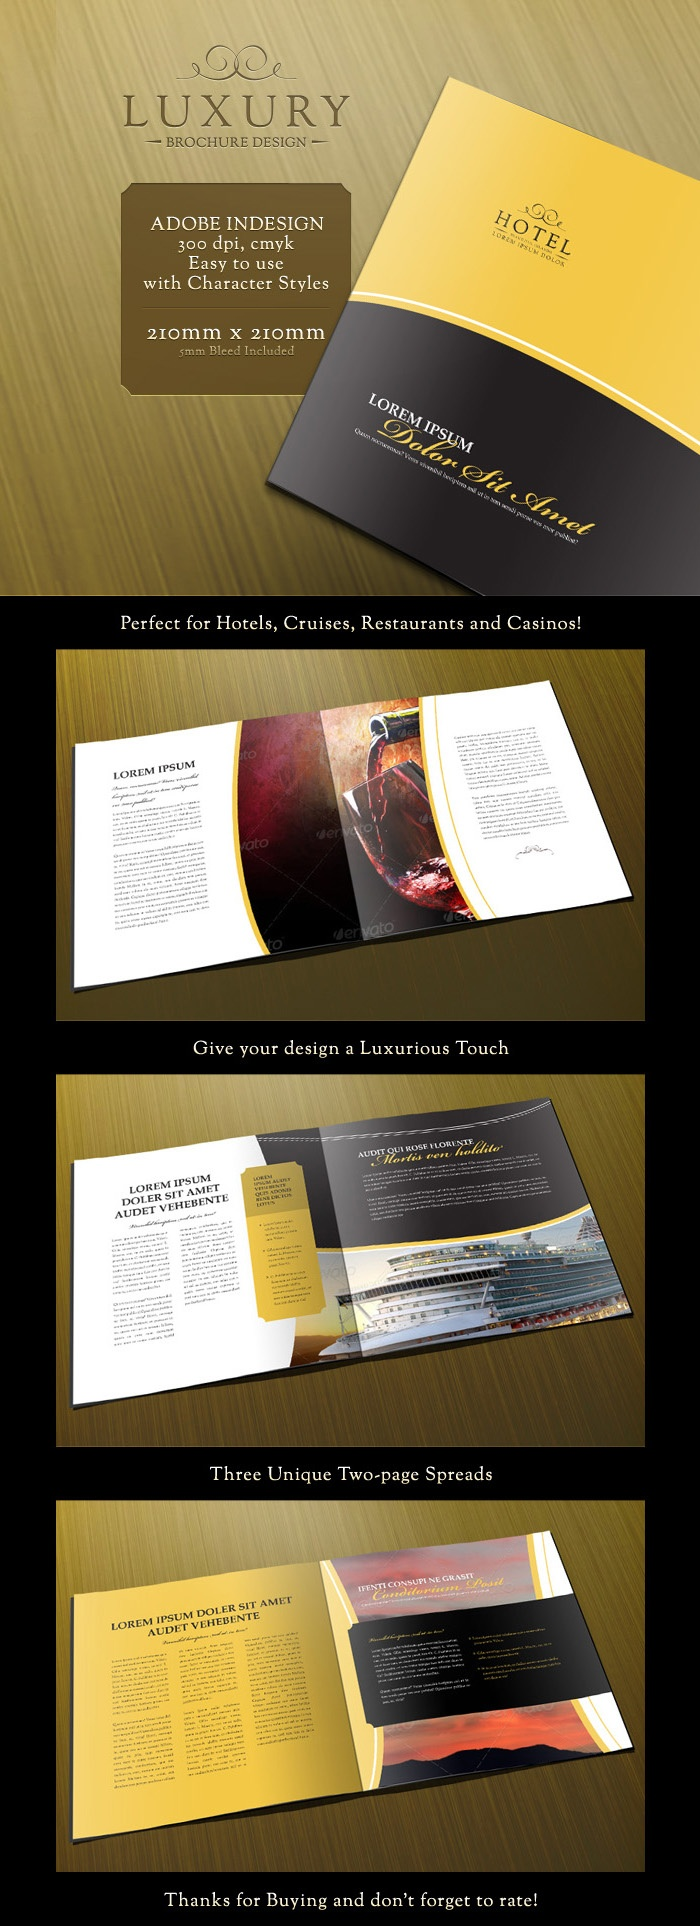 1000 ideas about luxury brochure on pinterest brochures for 8 page brochure template